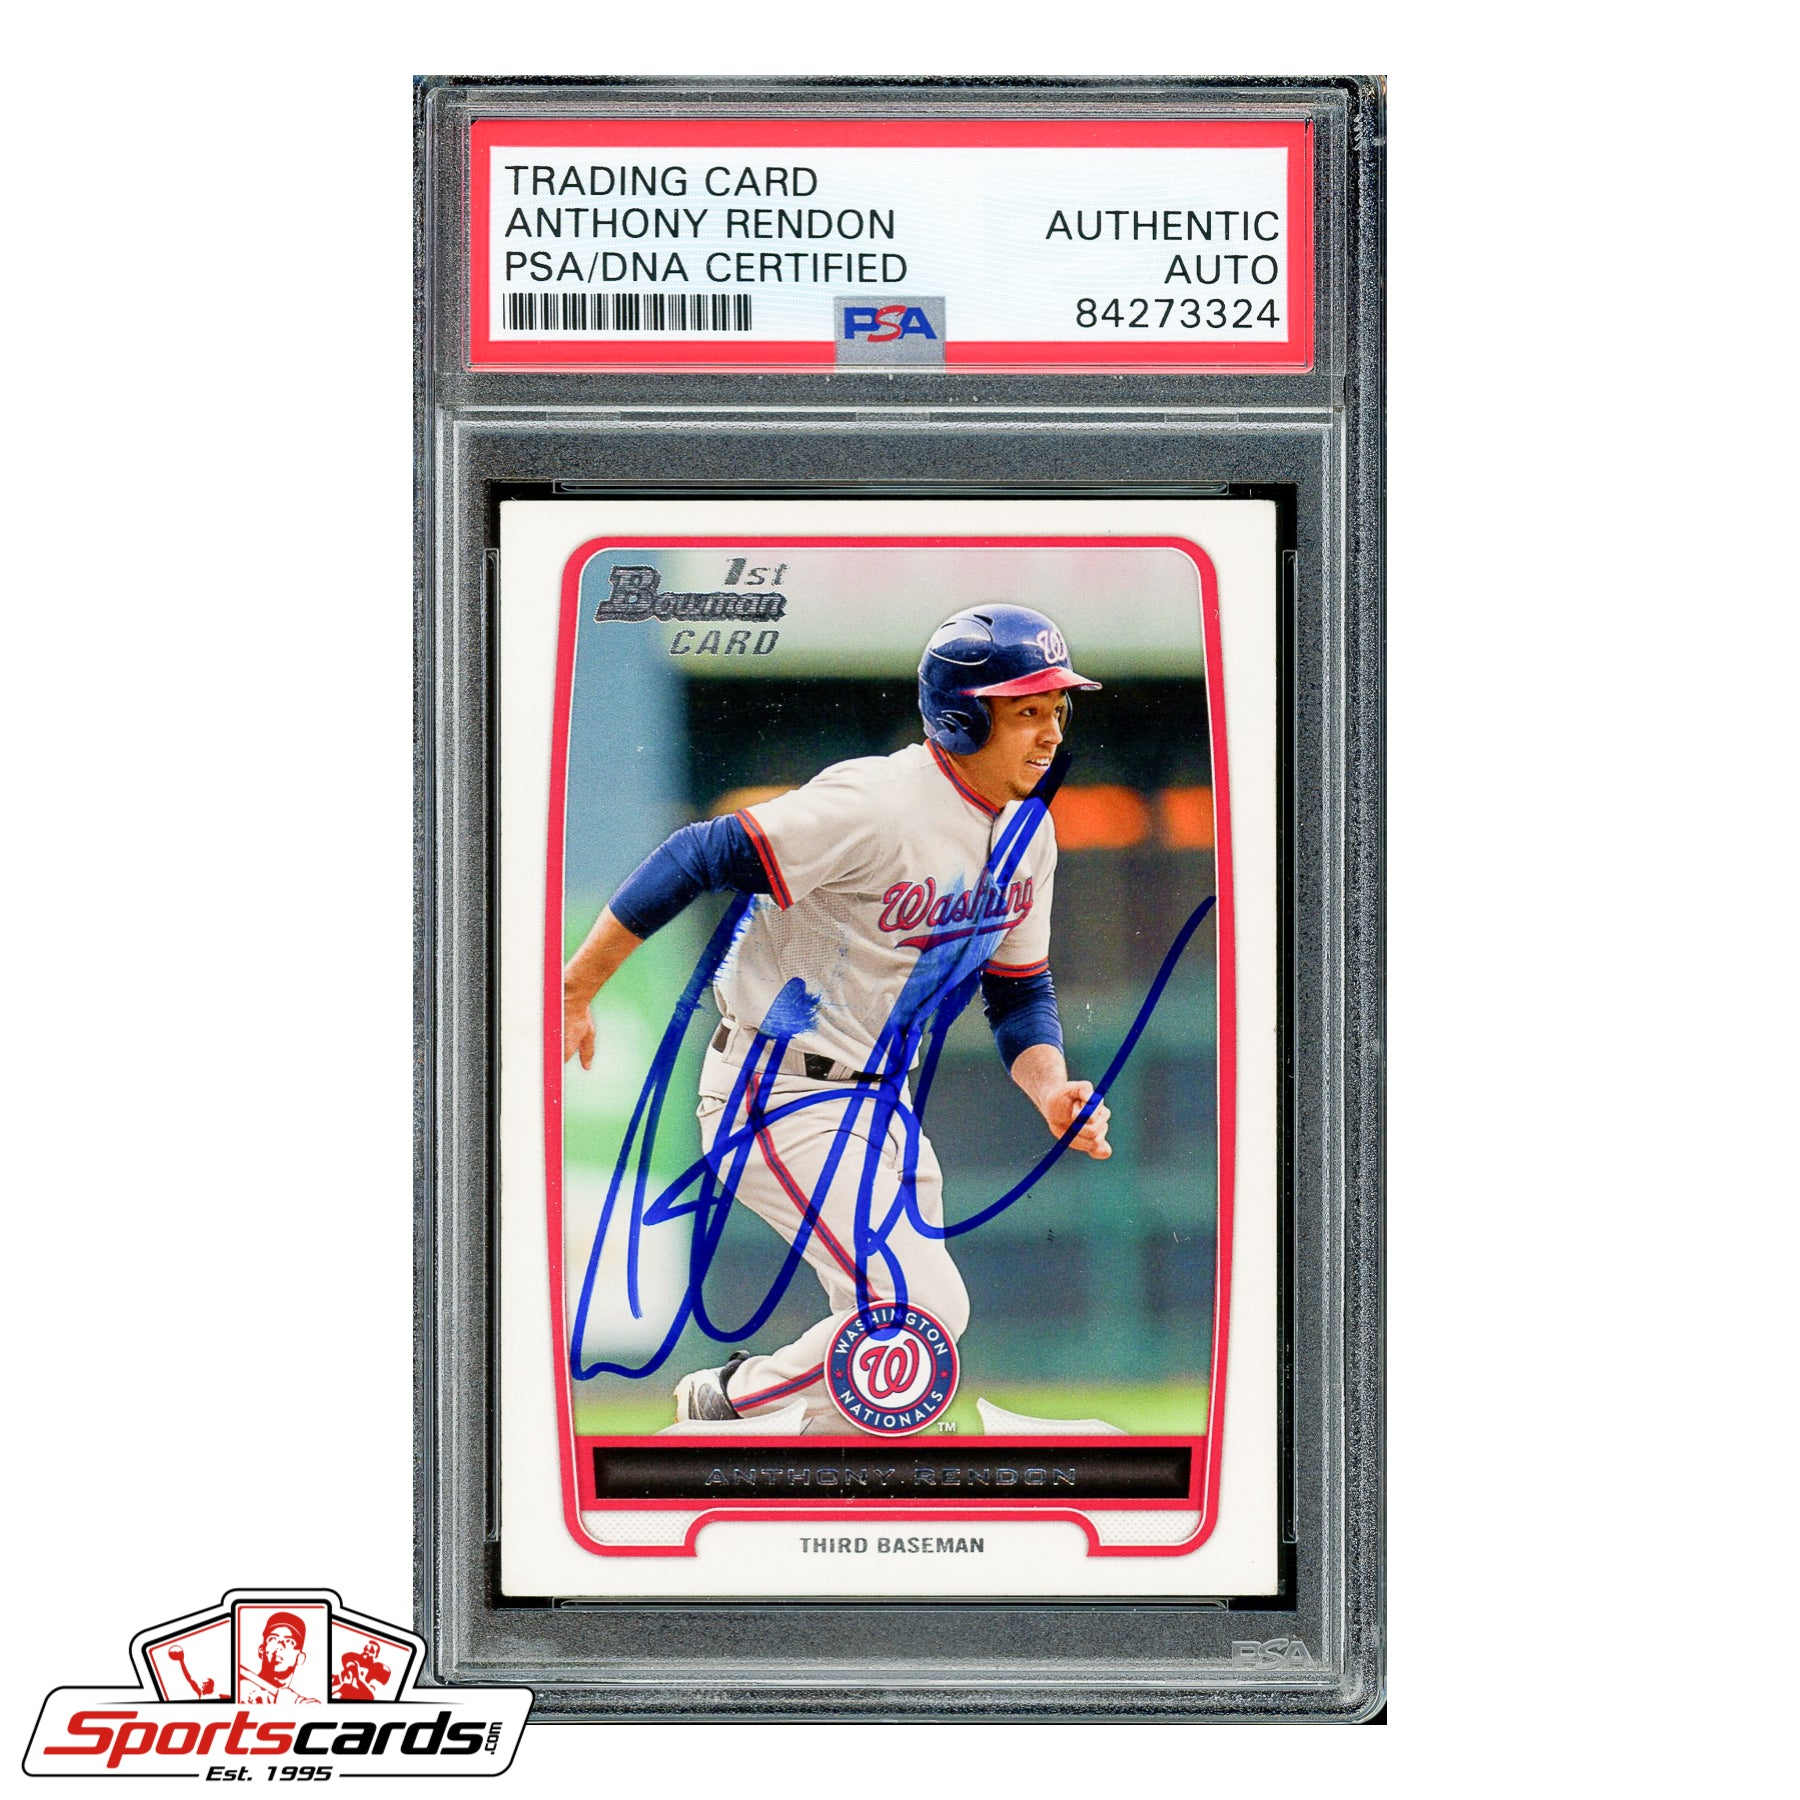 Anthony Rendon Signed Auto 2012 Bowman Draft 1st Bowman RC #BP88 PSA